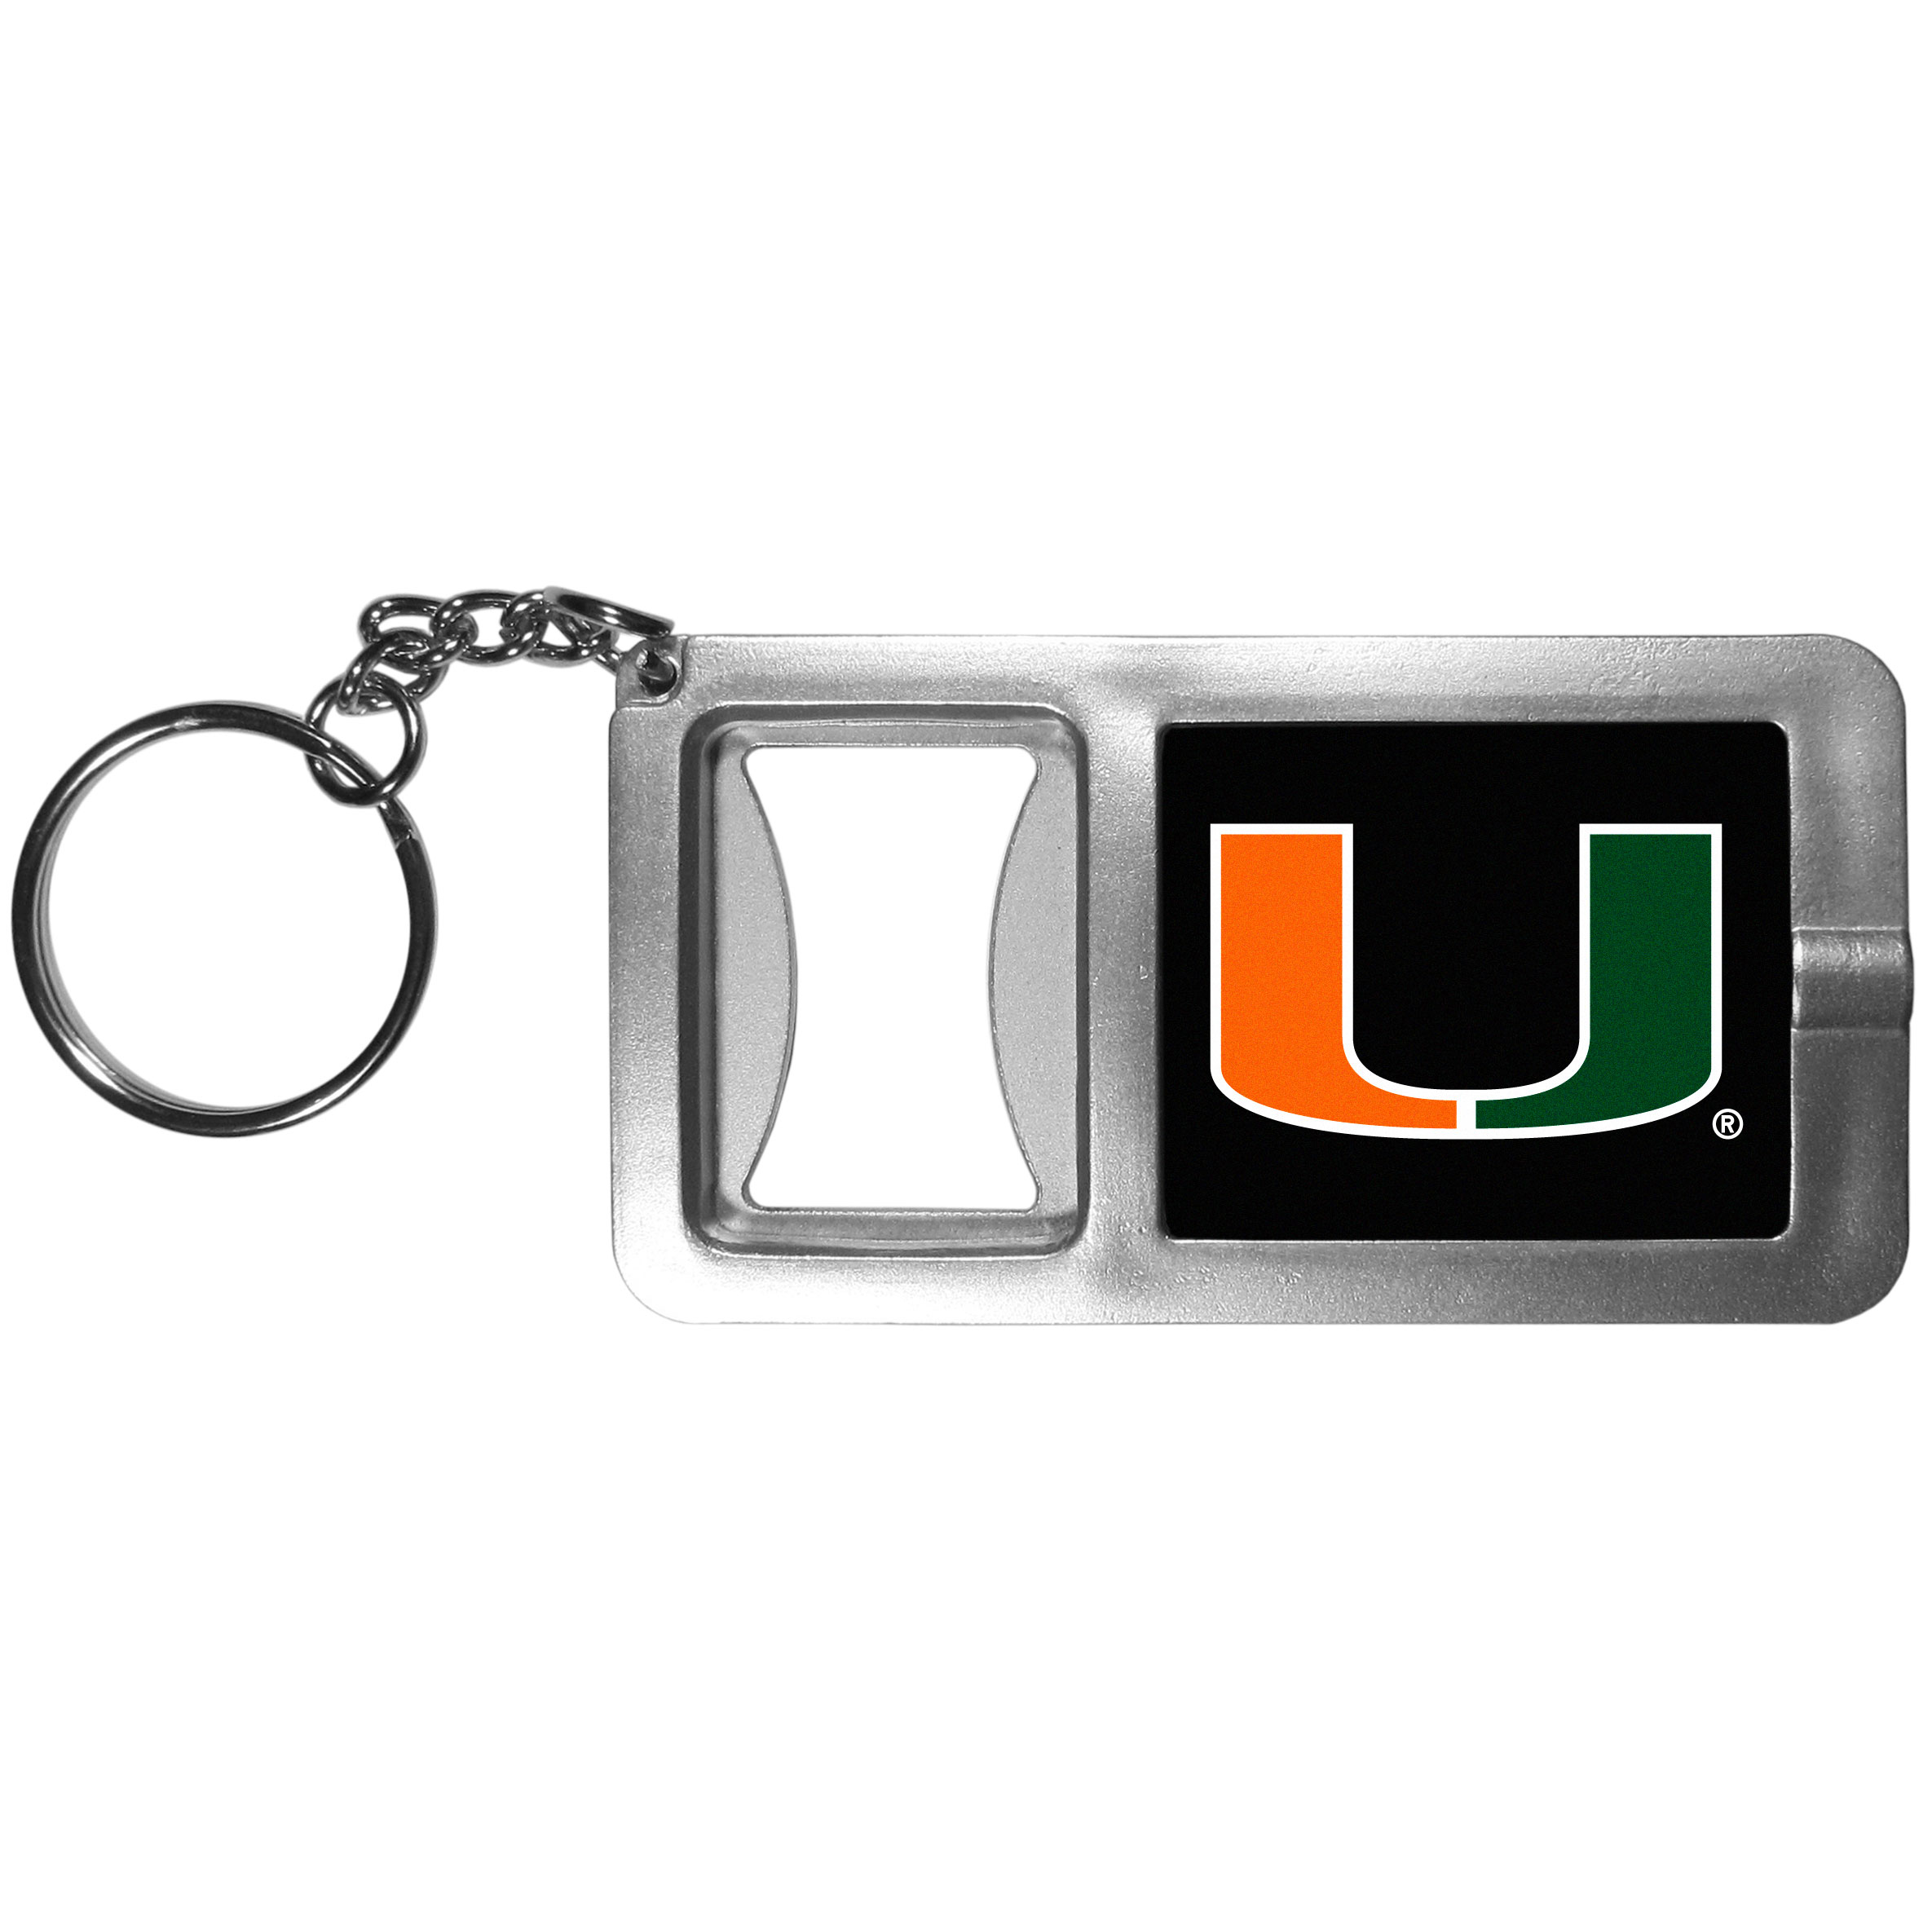 Miami Hurricanes Flashlight Key Chain with Bottle Opener - Never be without light with our Miami Hurricanes flashlight keychain that features a handy bottle opener feature. This versatile key chain is perfect for camping and travel and is a great way to show off your team pride!